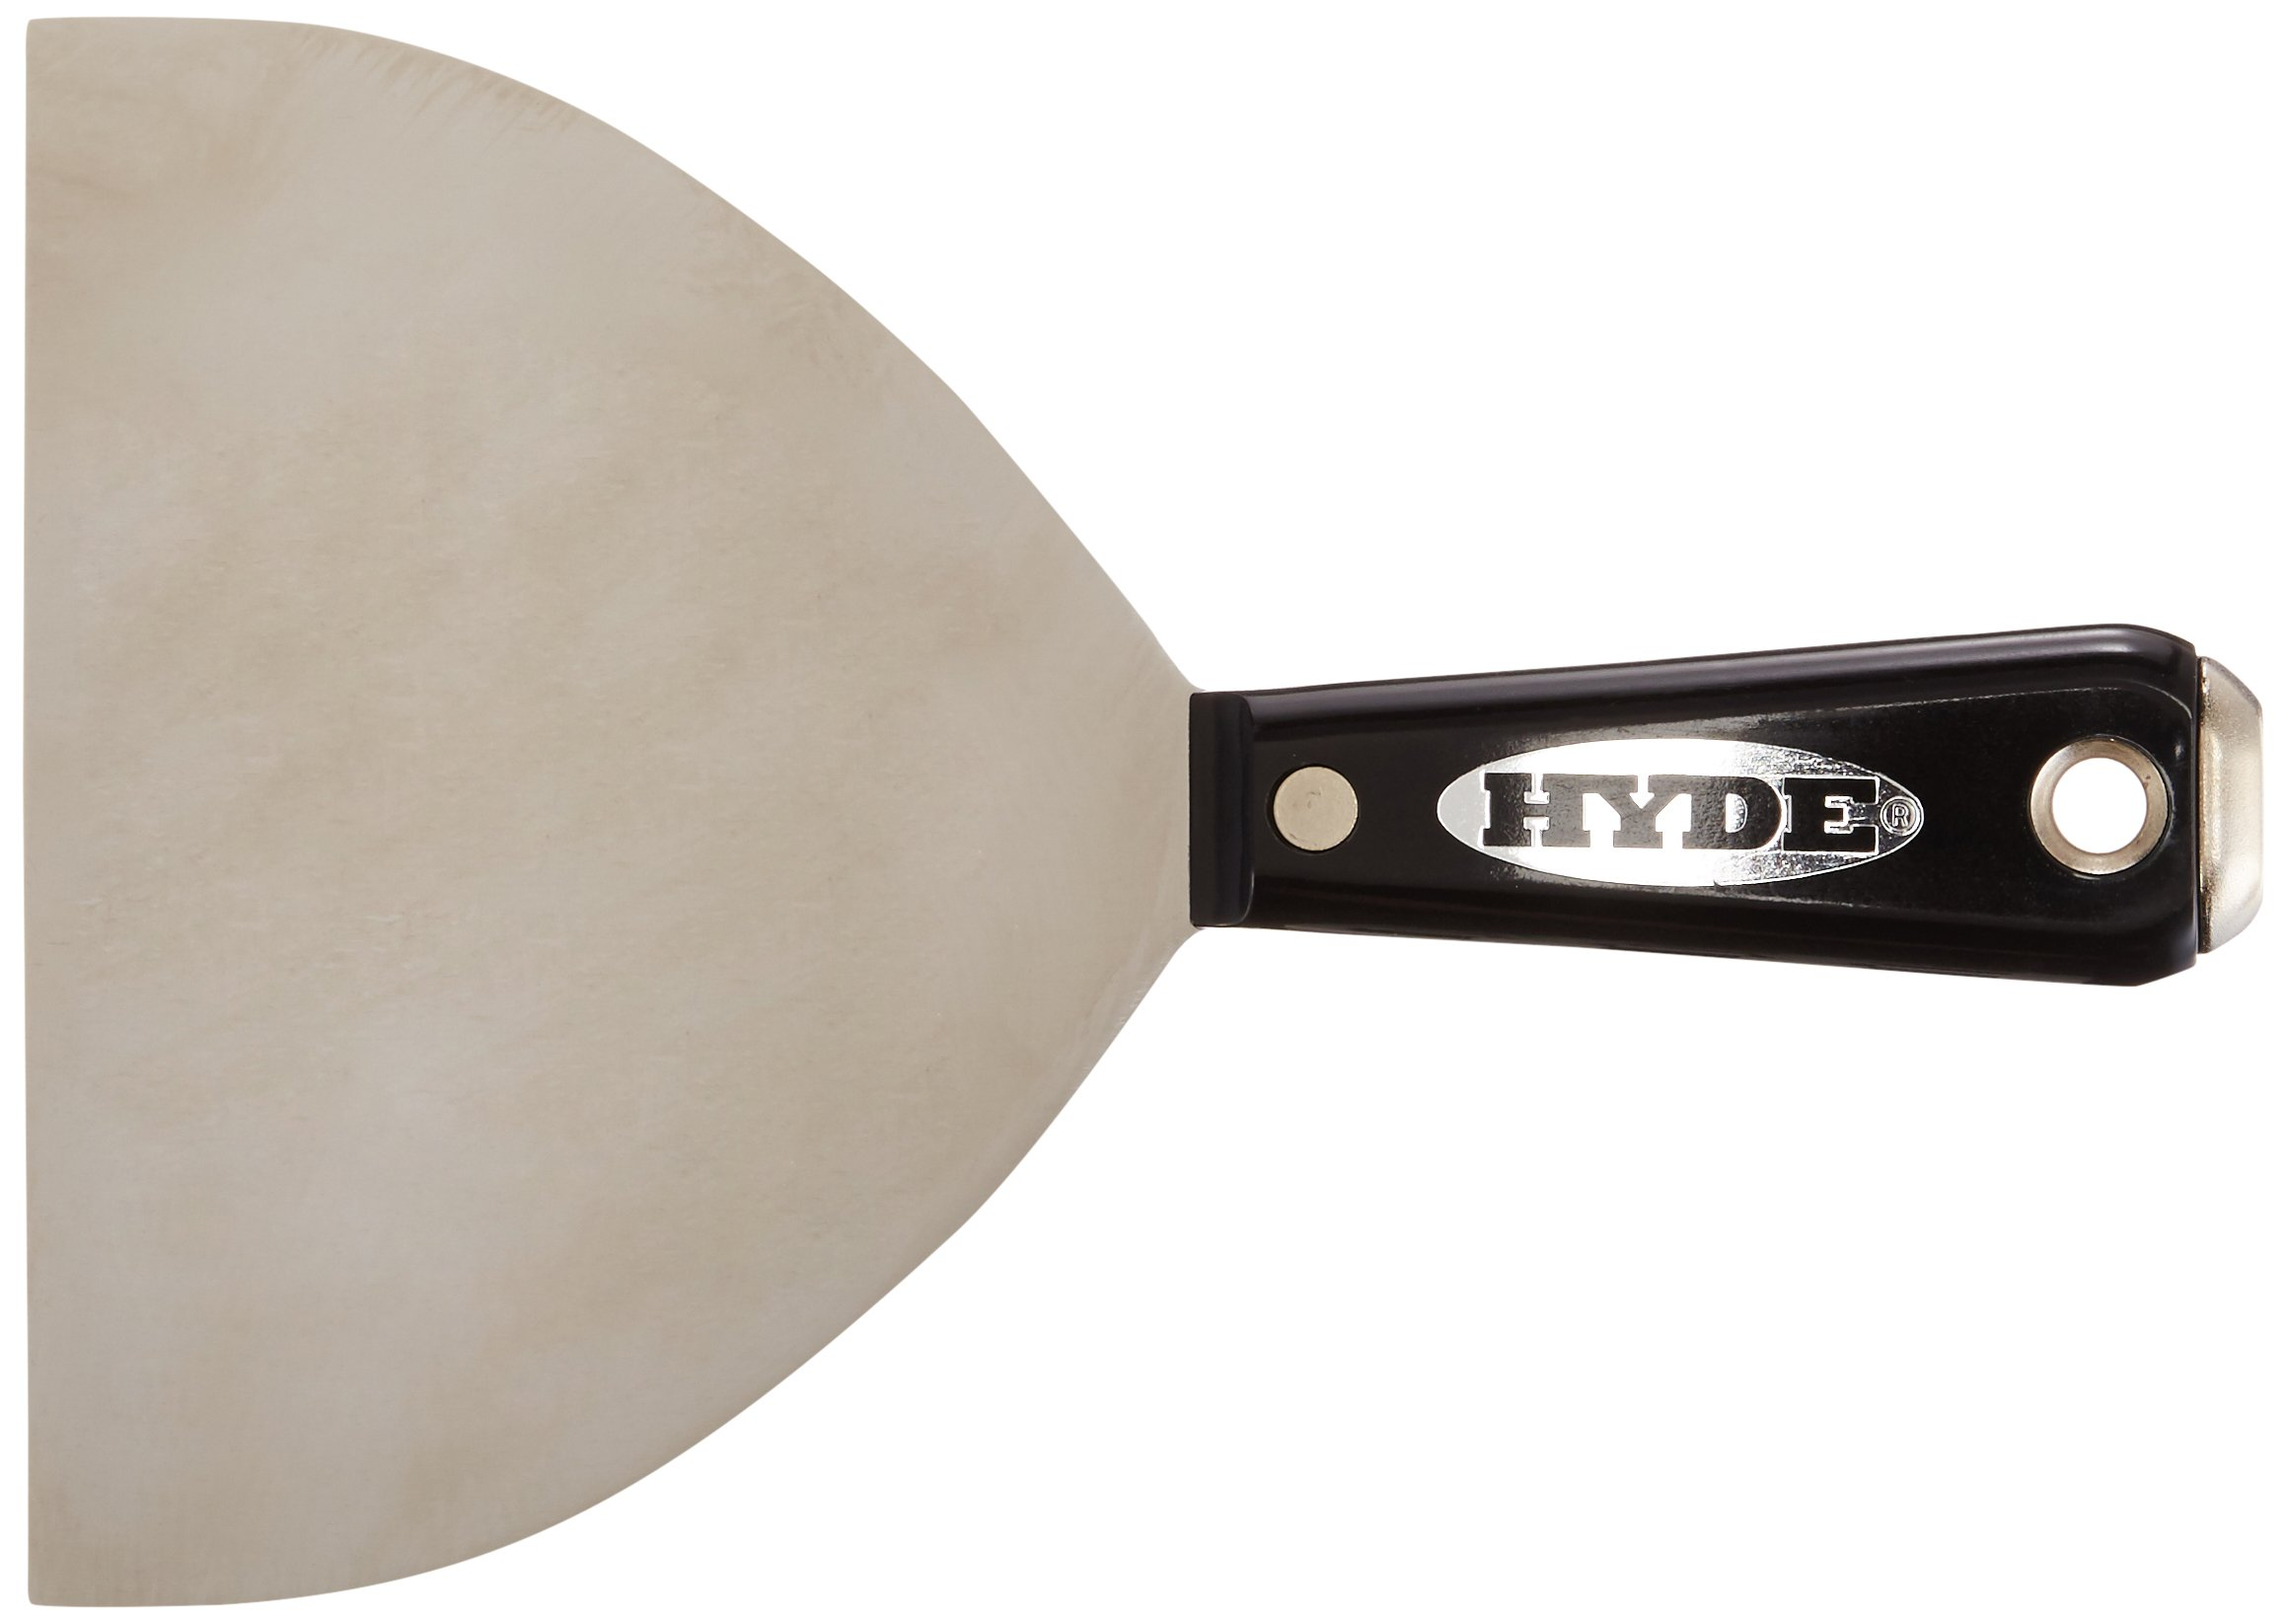 Hyde Tools 01850 Stainless Steel Hammer Head Joint Knife, Black and Silver, 6-Inch by Hyde Tools (Image #1)